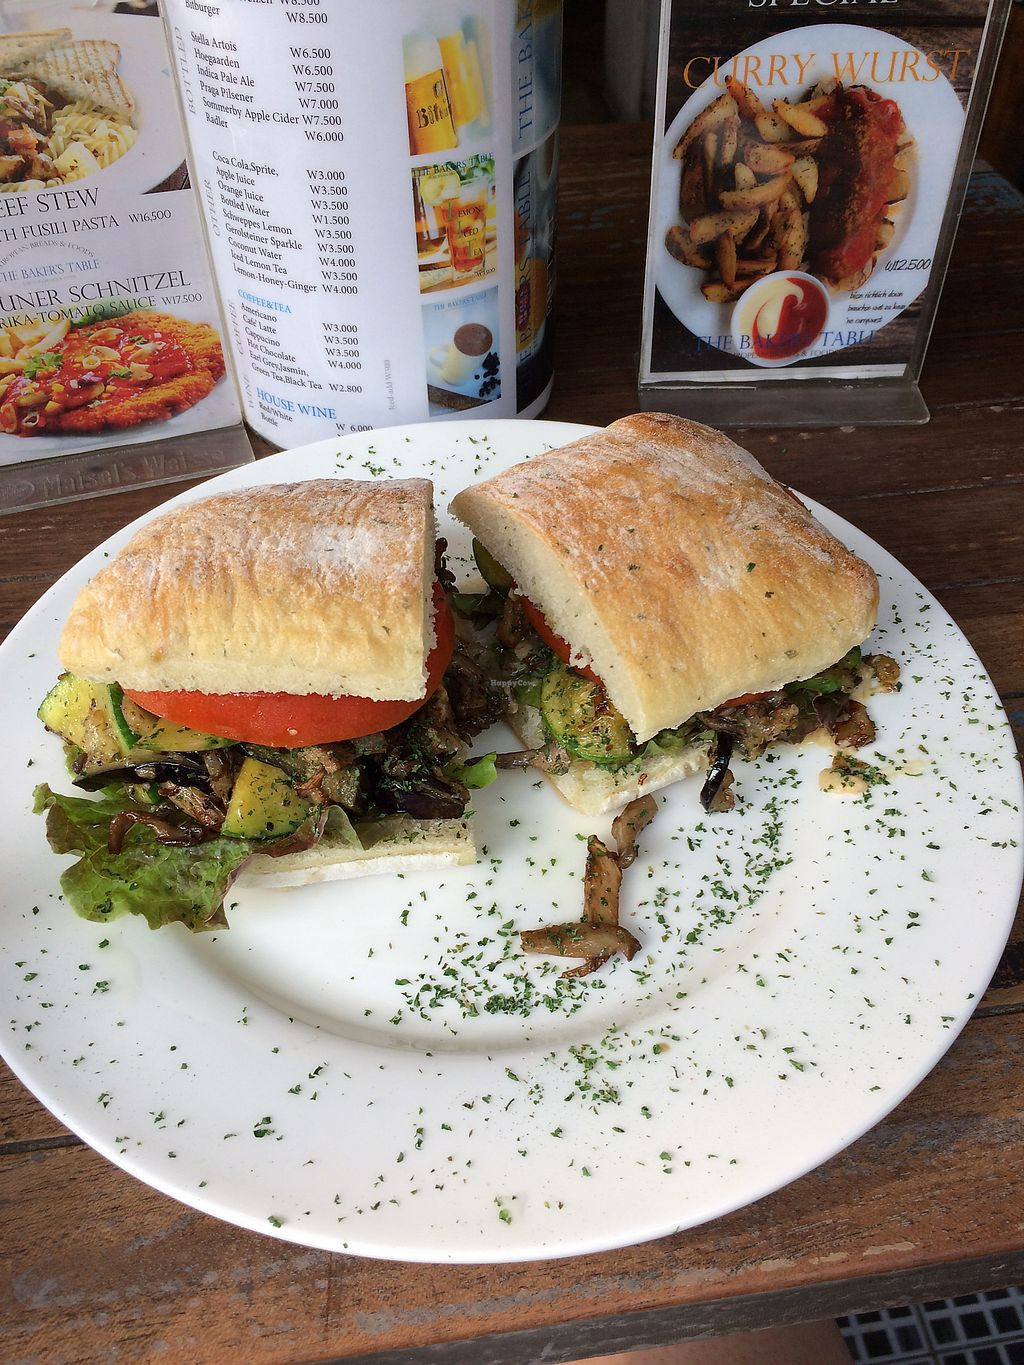 """Photo of The Bakers Table - 더베이커스테이블  by <a href=""""/members/profile/ellieallan"""">ellieallan</a> <br/>""""the vegan"""" sandwich  <br/> July 19, 2017  - <a href='/contact/abuse/image/85311/282076'>Report</a>"""